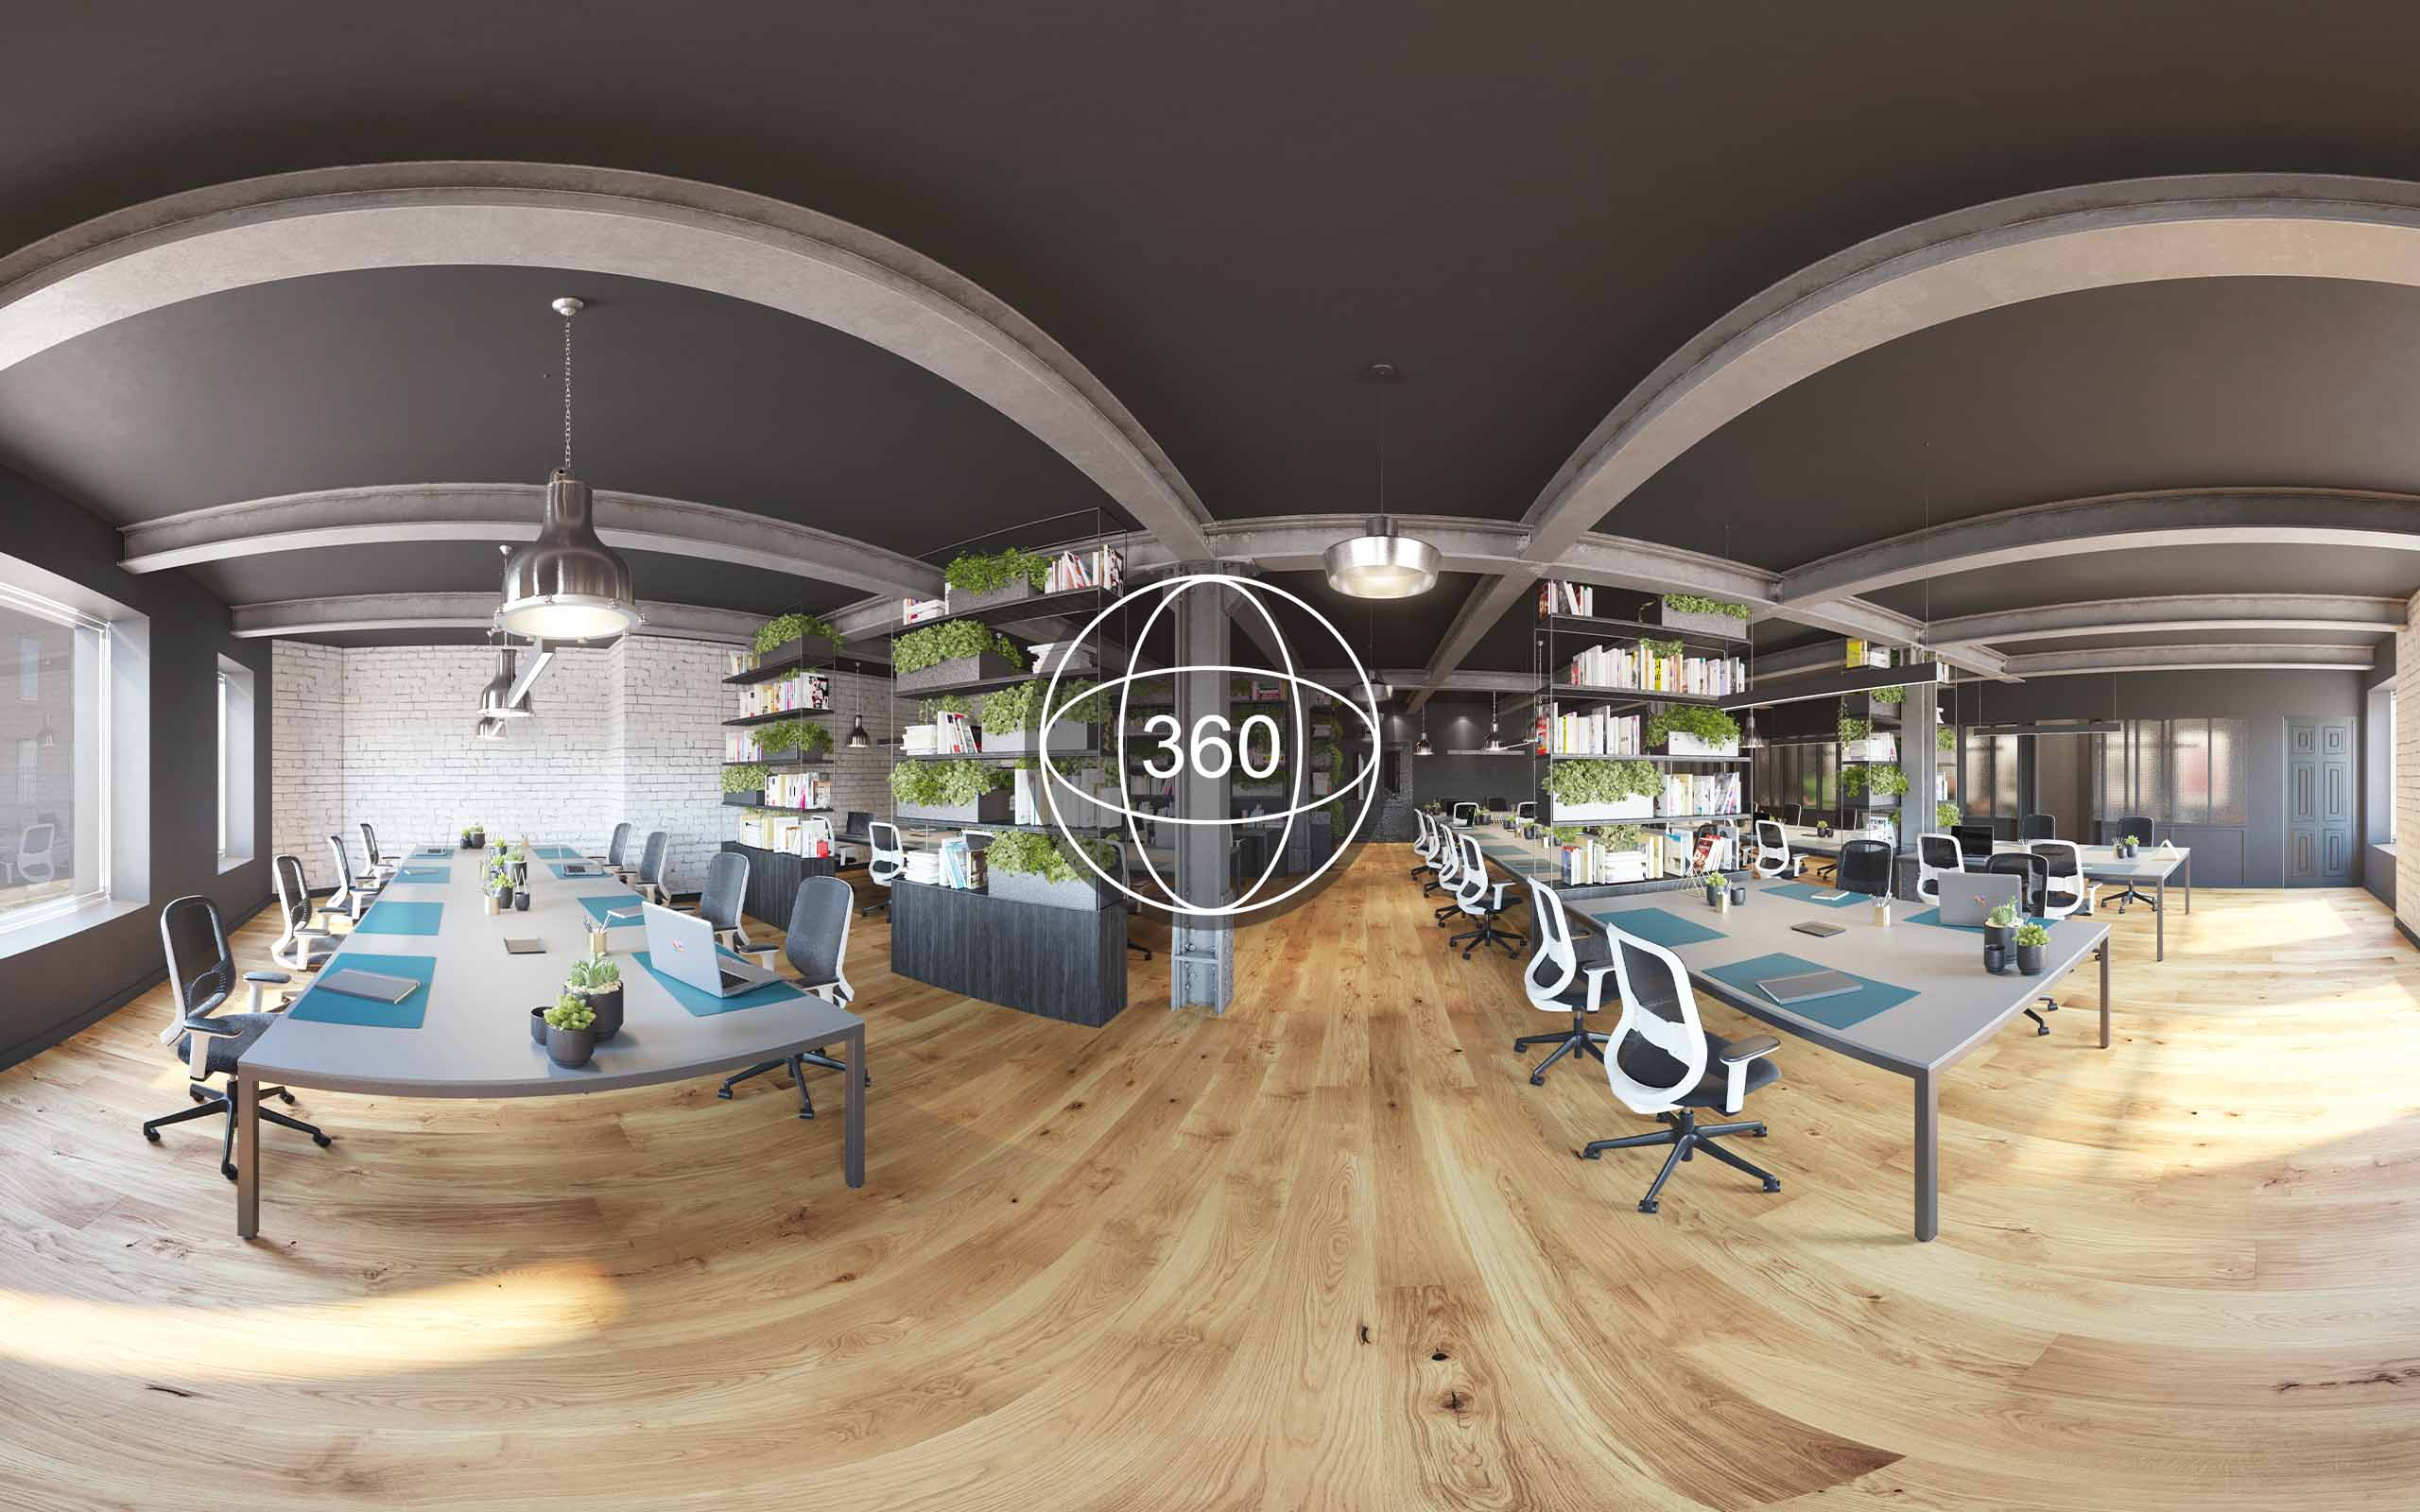 Off plans 360 virtual tour of Iconic Offices' The Masonry in Dublin 8.